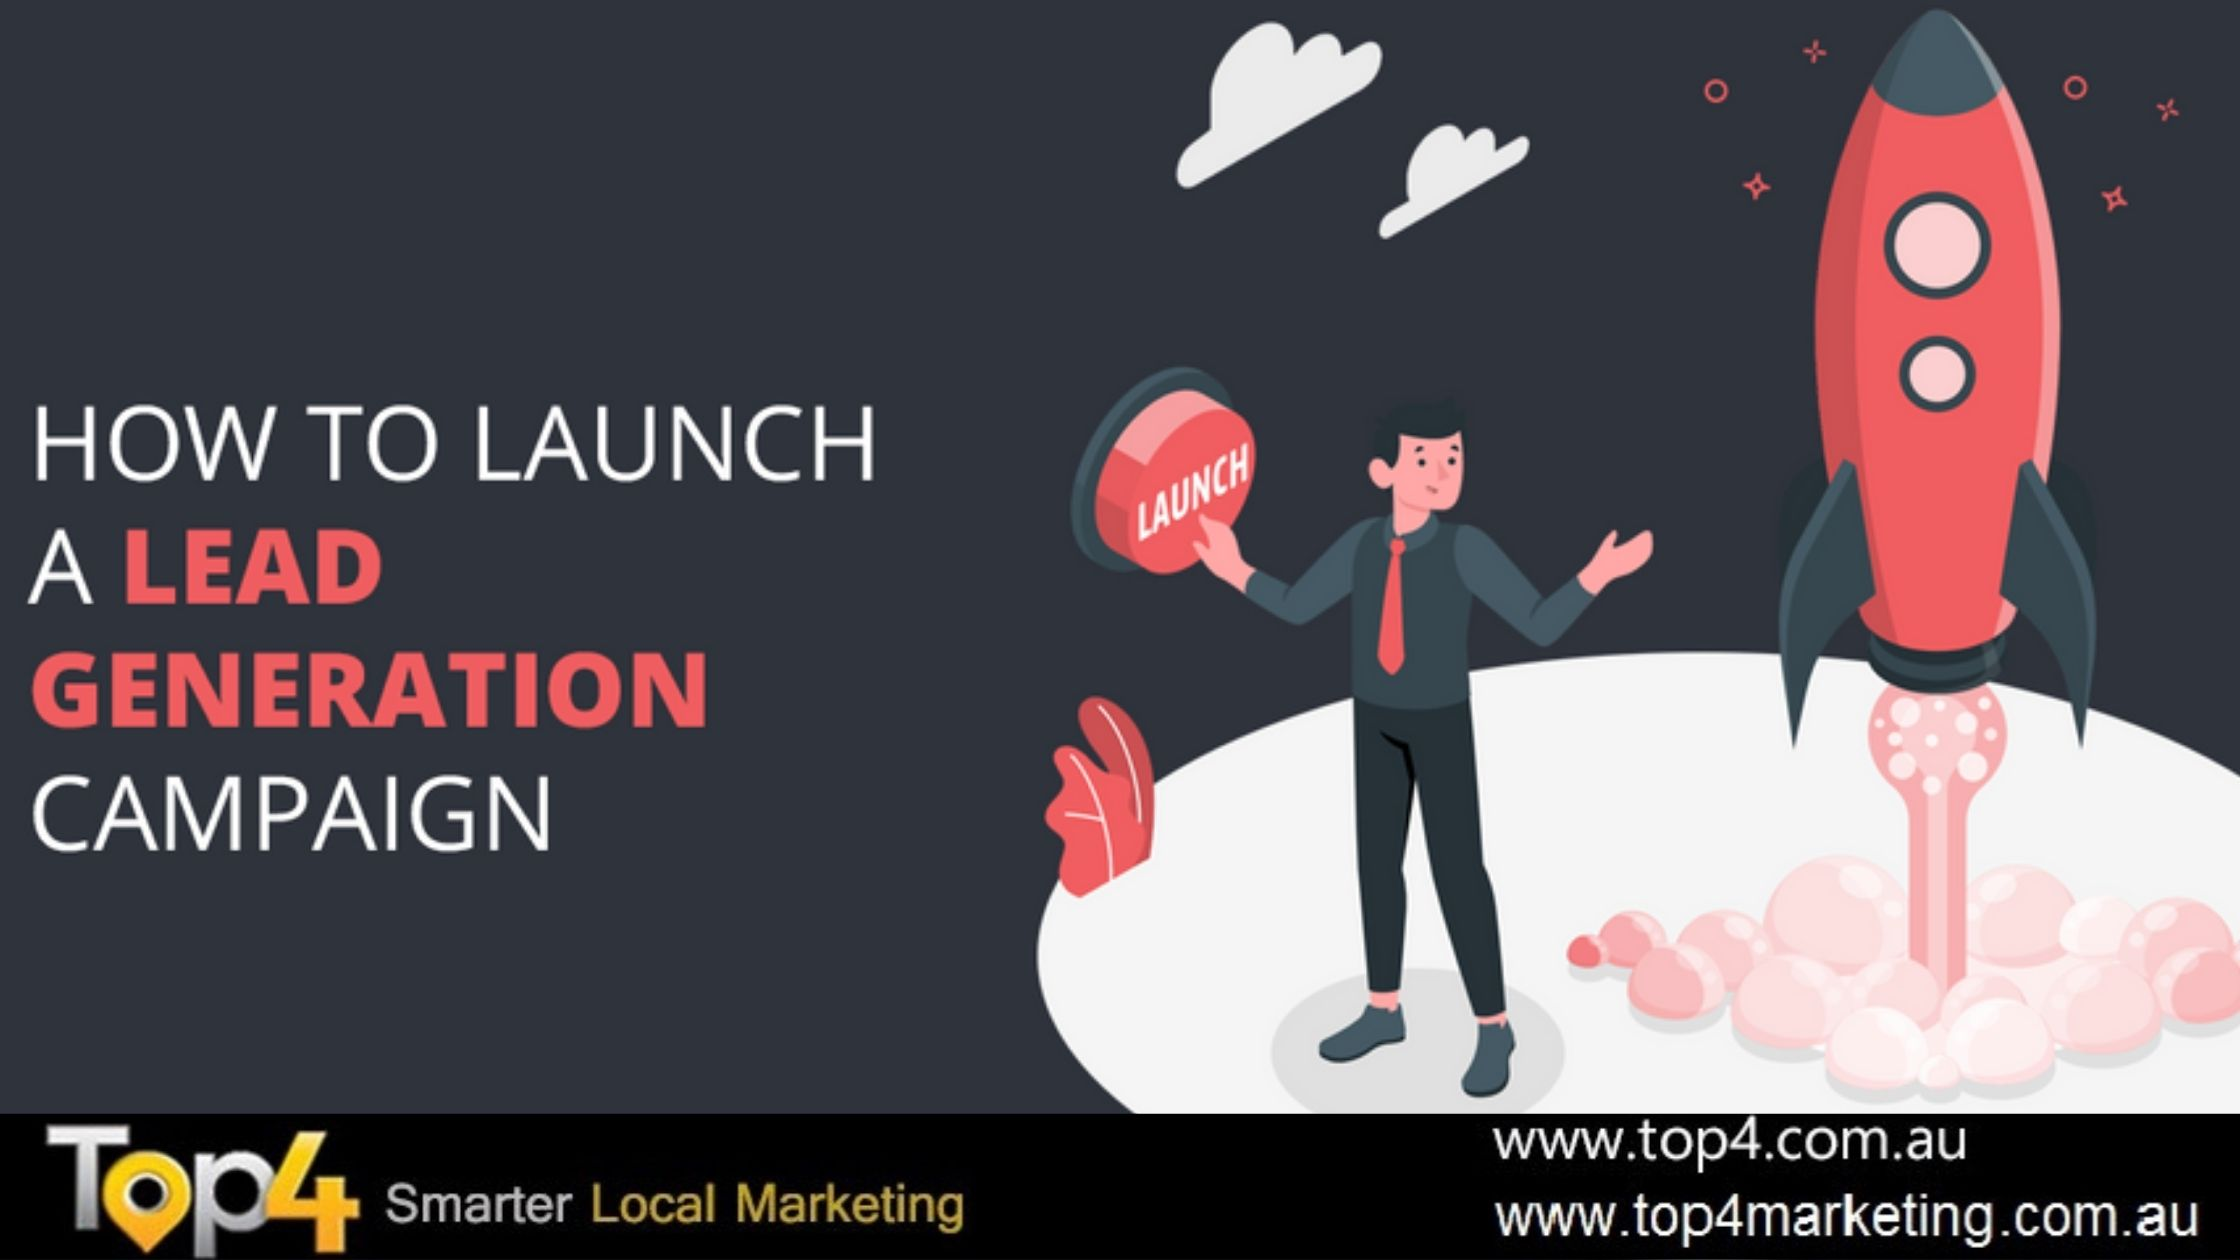 How to Launch a Lead Generation Campaign - Top4 Marketing